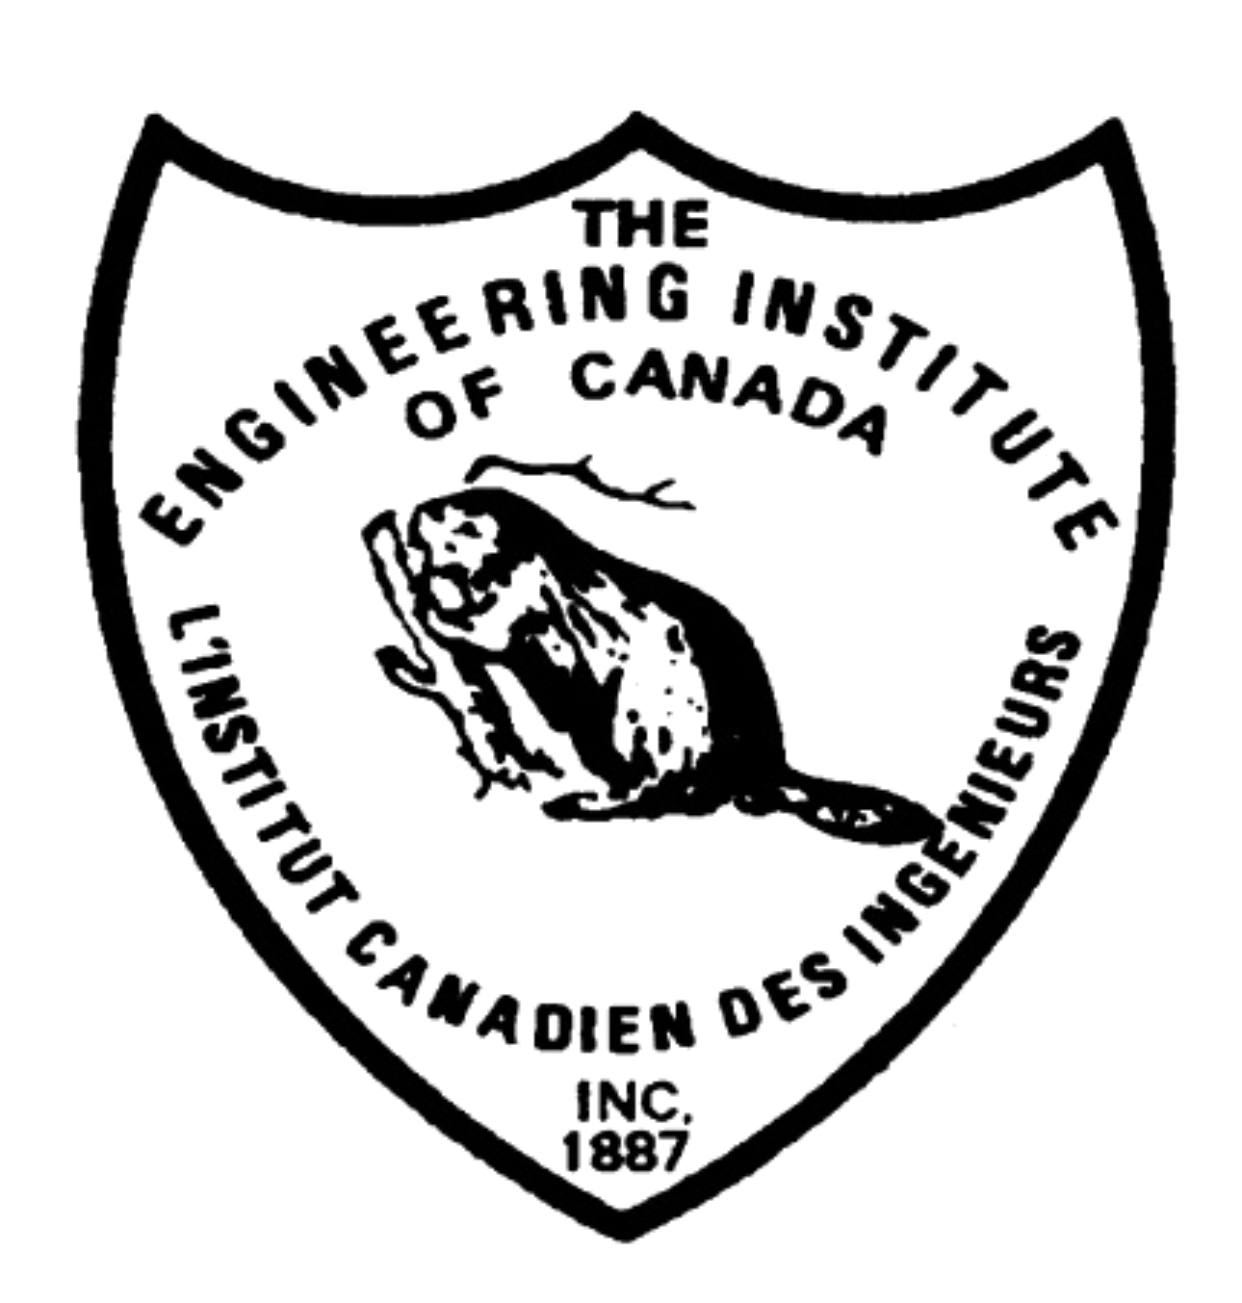 Continuing Education Units accredited by the Engineering Institute of Canada